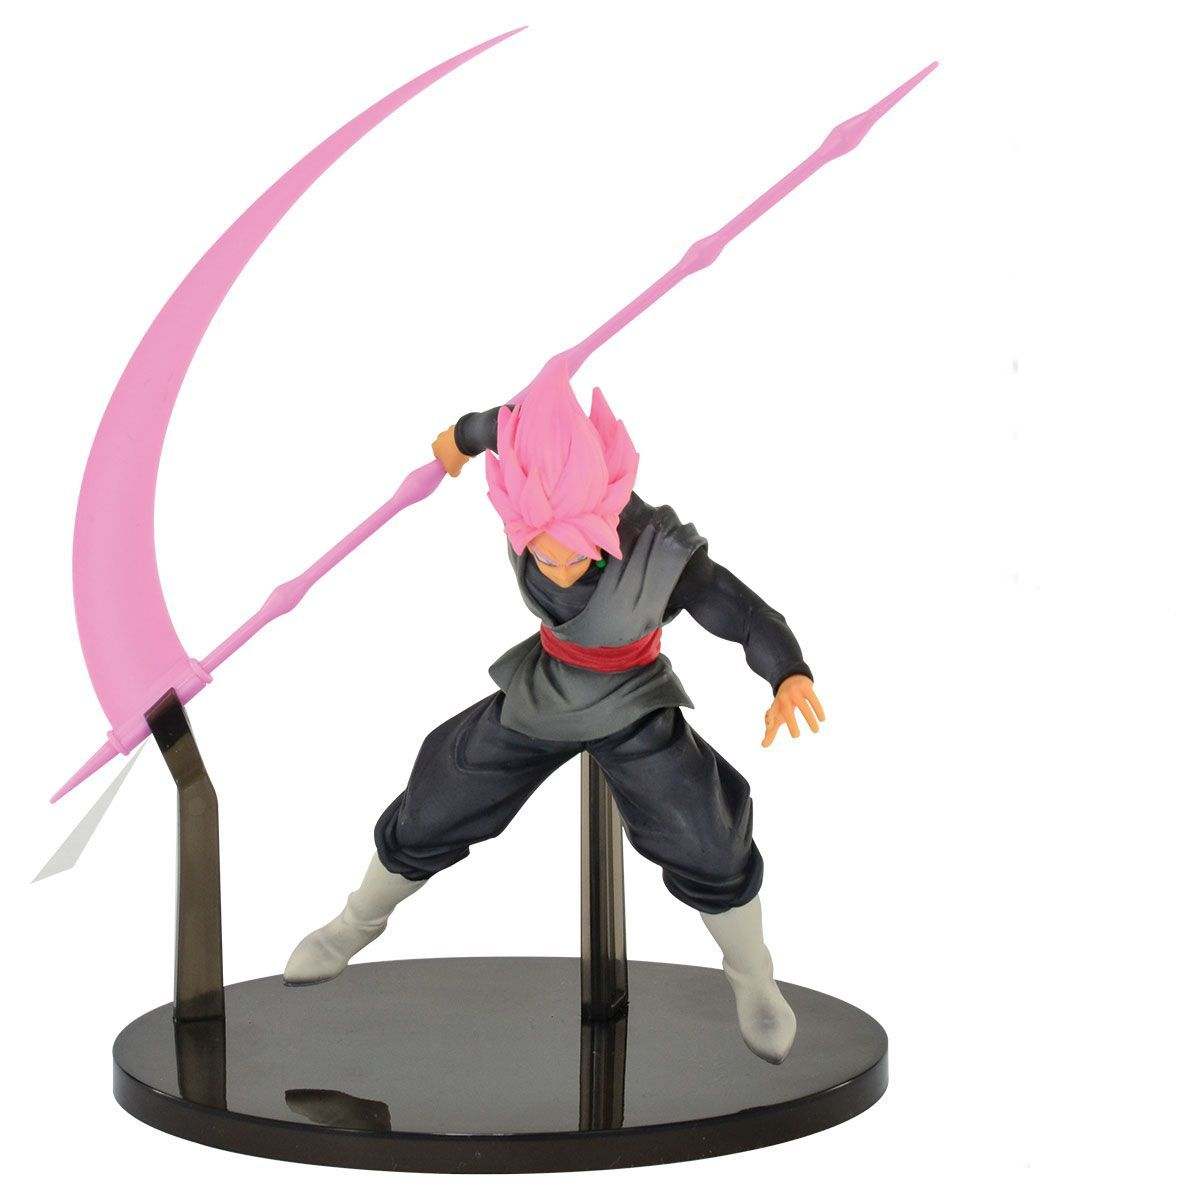 Estátua Goku Black Super Saiyajin Rose: Dragon Ball Z Colosseum2 Vol.9 BWFC Anime Mangá  - Banpresto Bandai